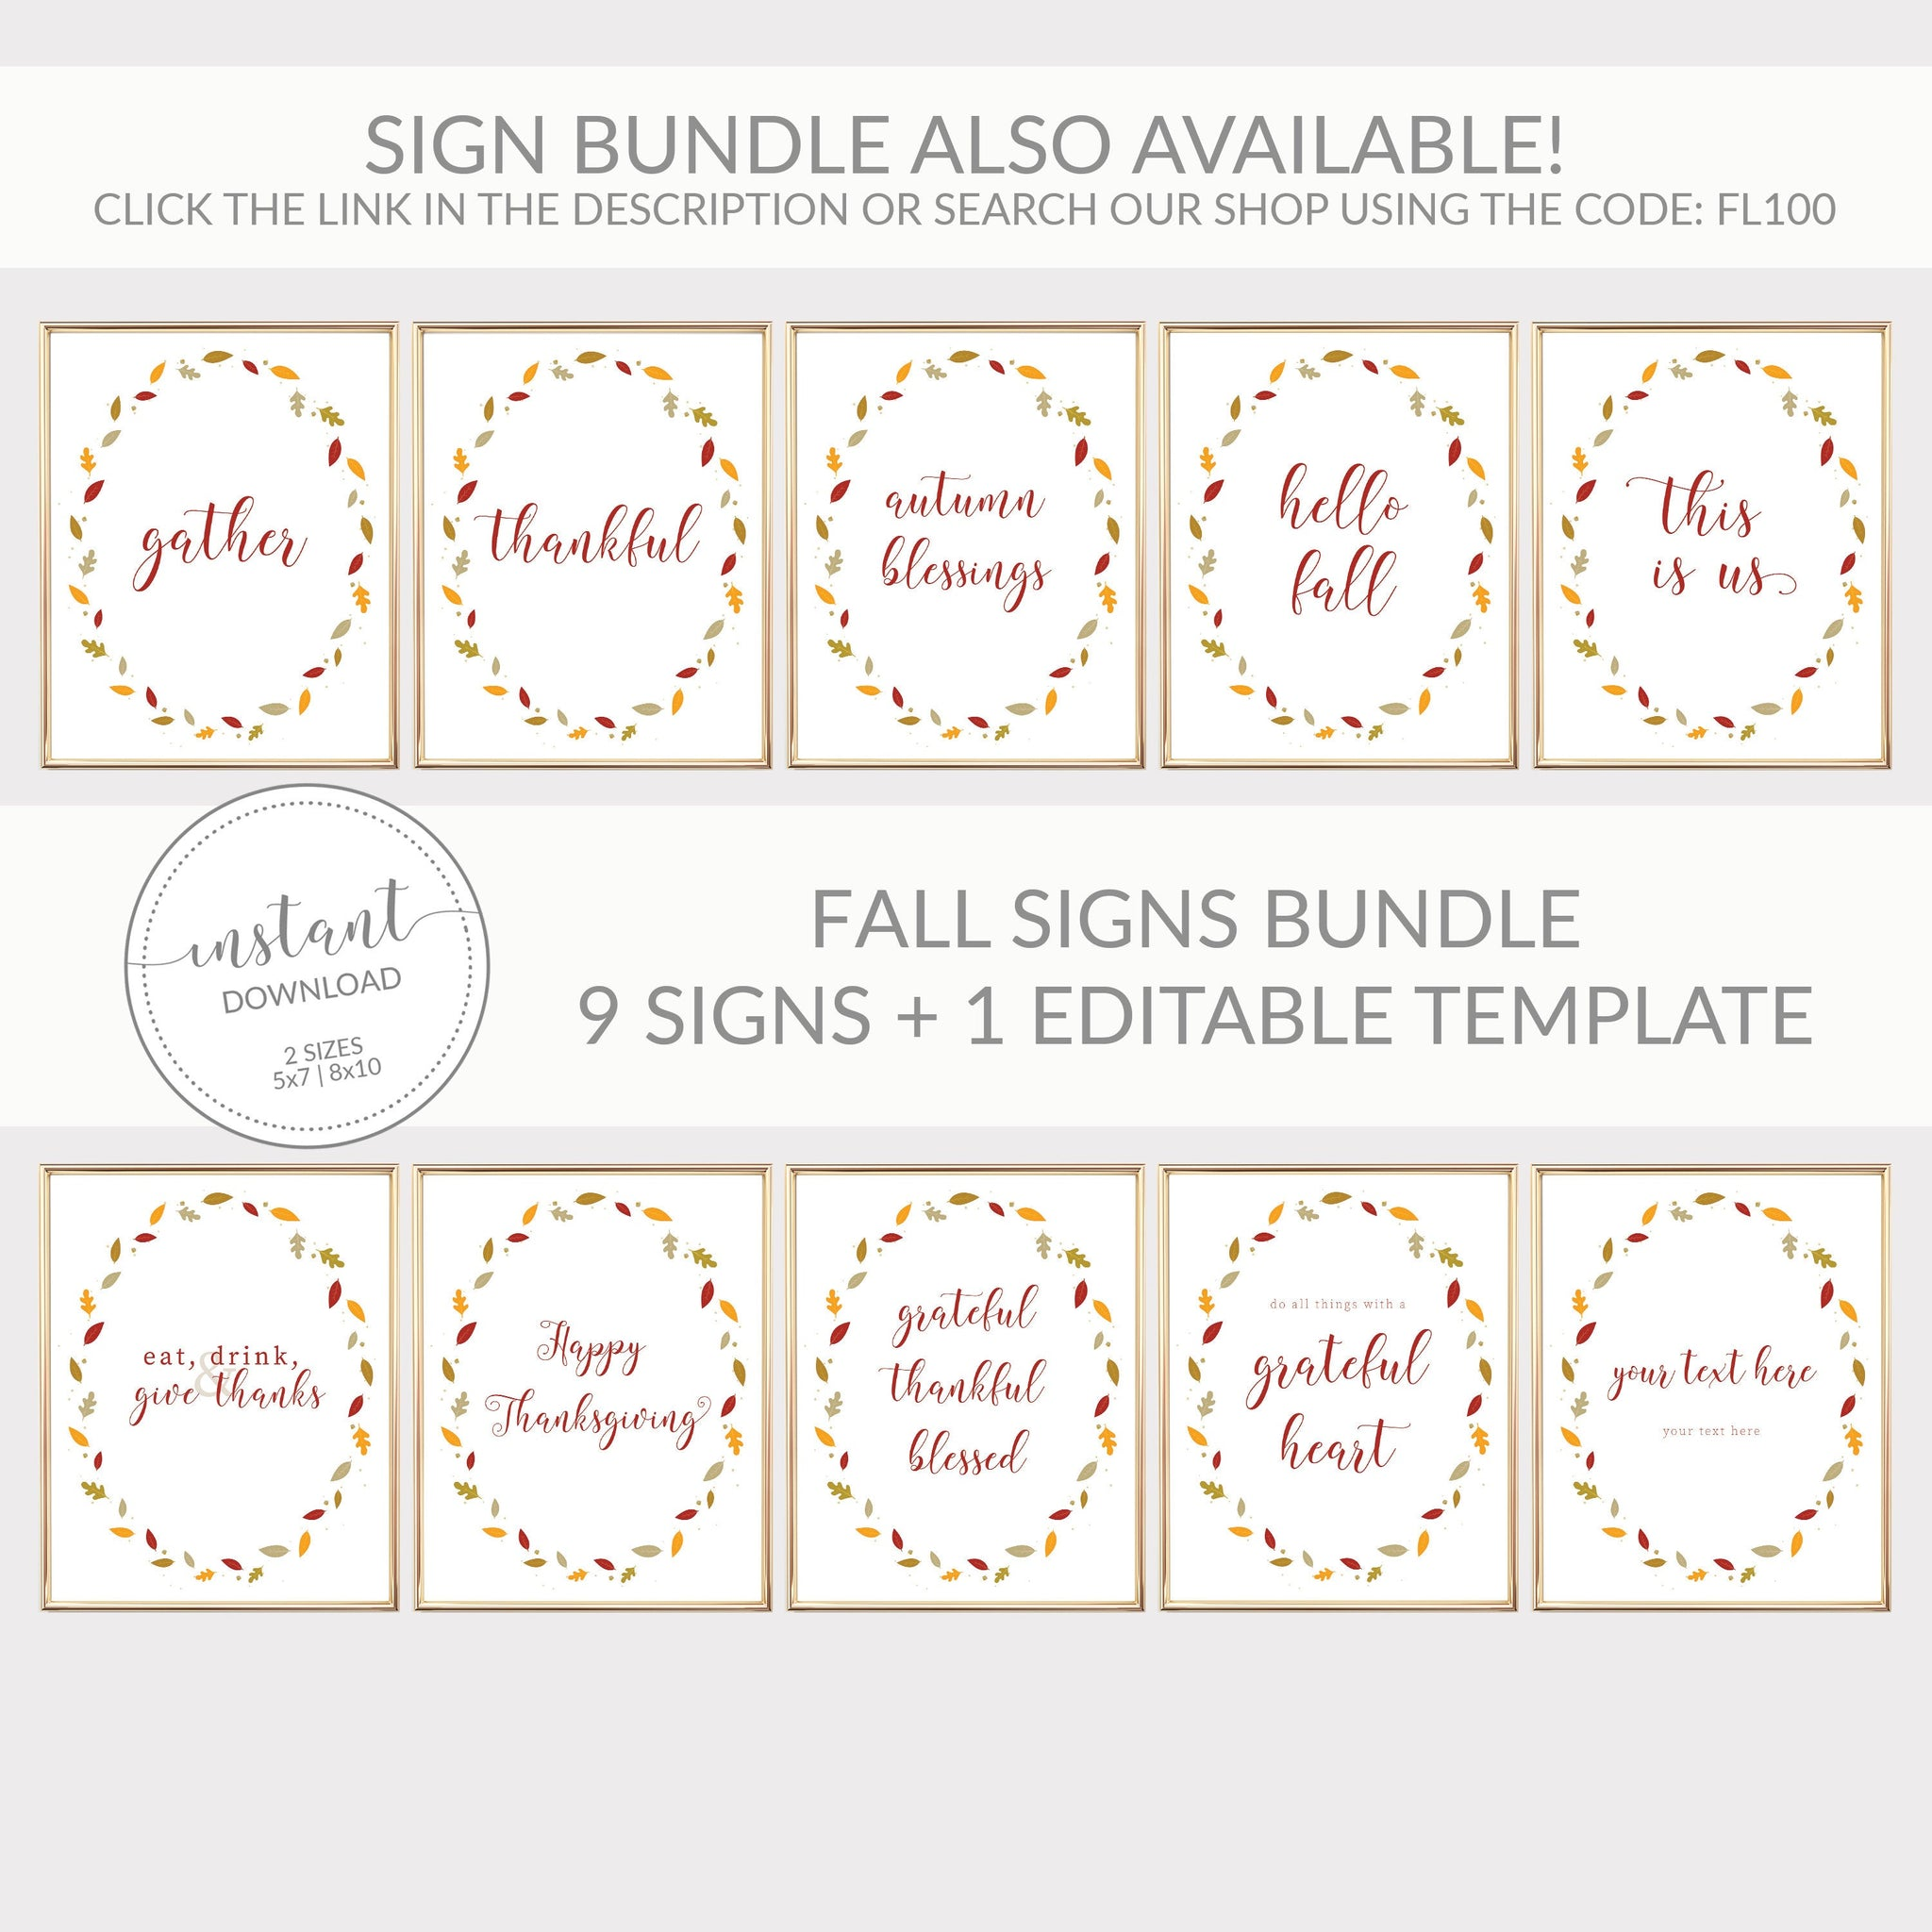 Autumn Blessings Sign, Thanksgiving Decorations, Fall Decor Leaves, Printable Fall Decor for Mantle, INSTANT DOWNLOAD - FL100